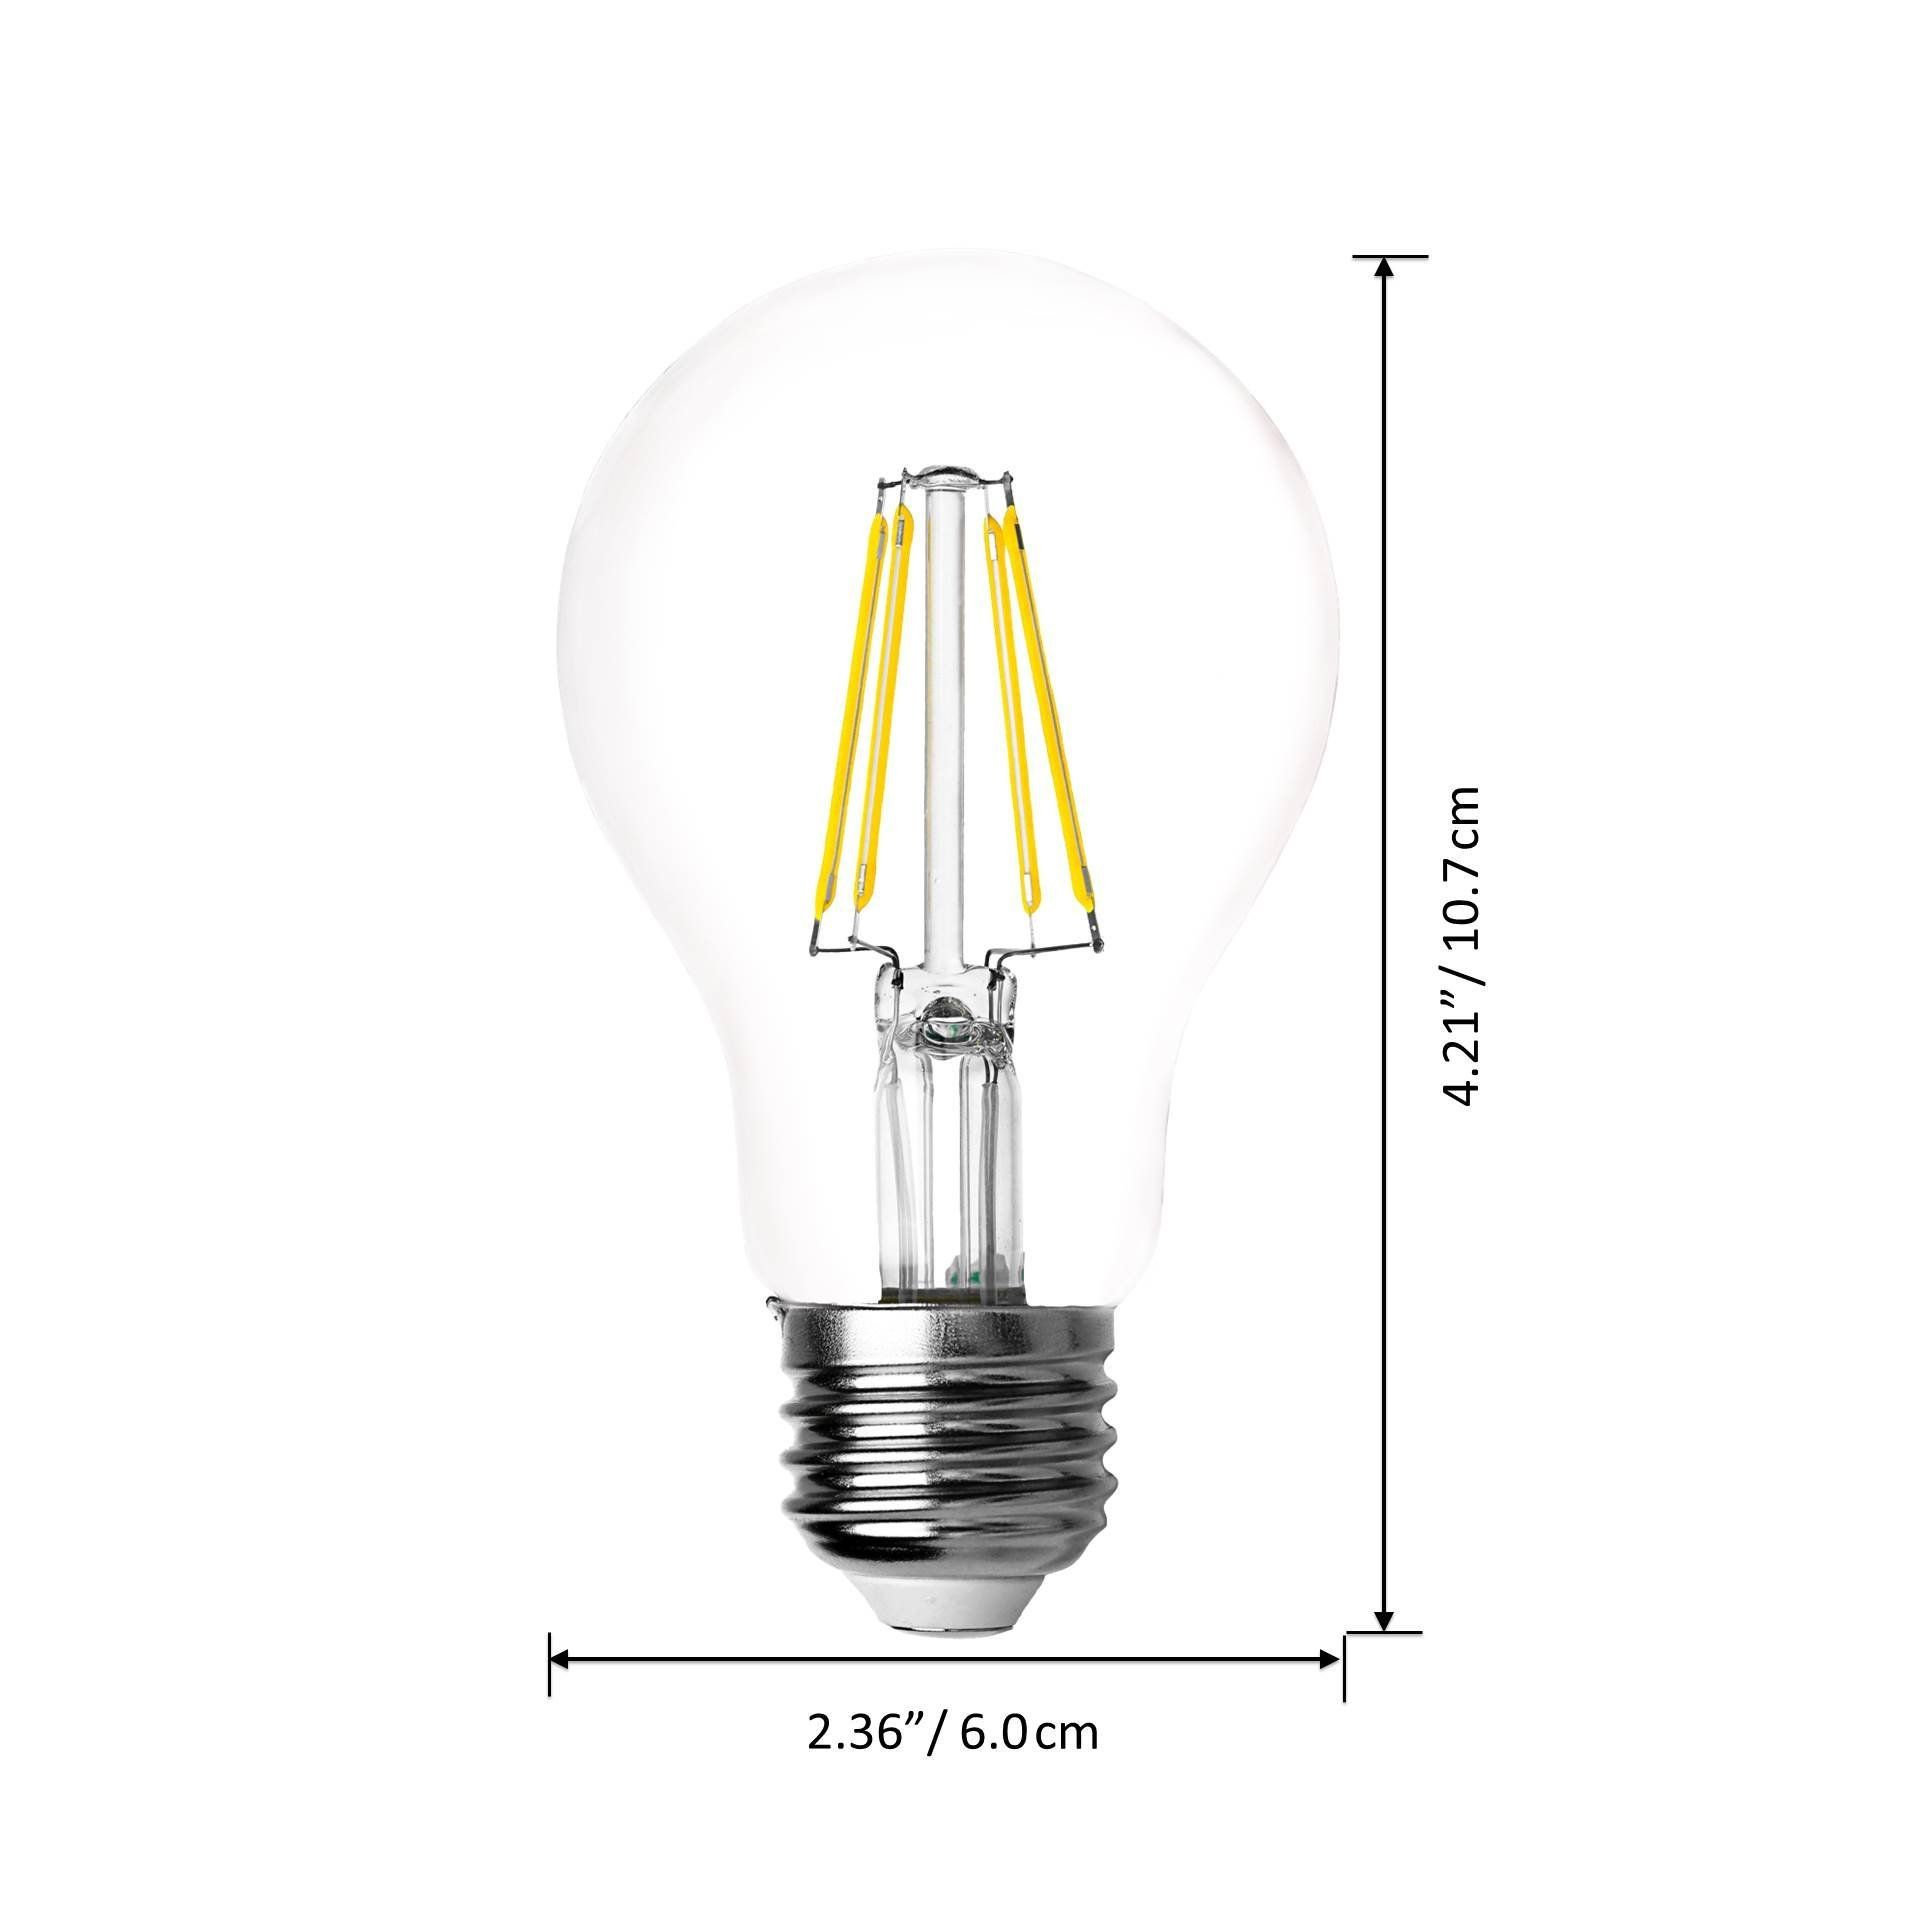 Bluefire 5 Watts A19 Led Filament Bulbs Natural Daylight Led 5000k 600 Lumens 50w Replacement Ul Listed Nondimmable 4pcs Value Light Bulb Filament Bulb Bulb